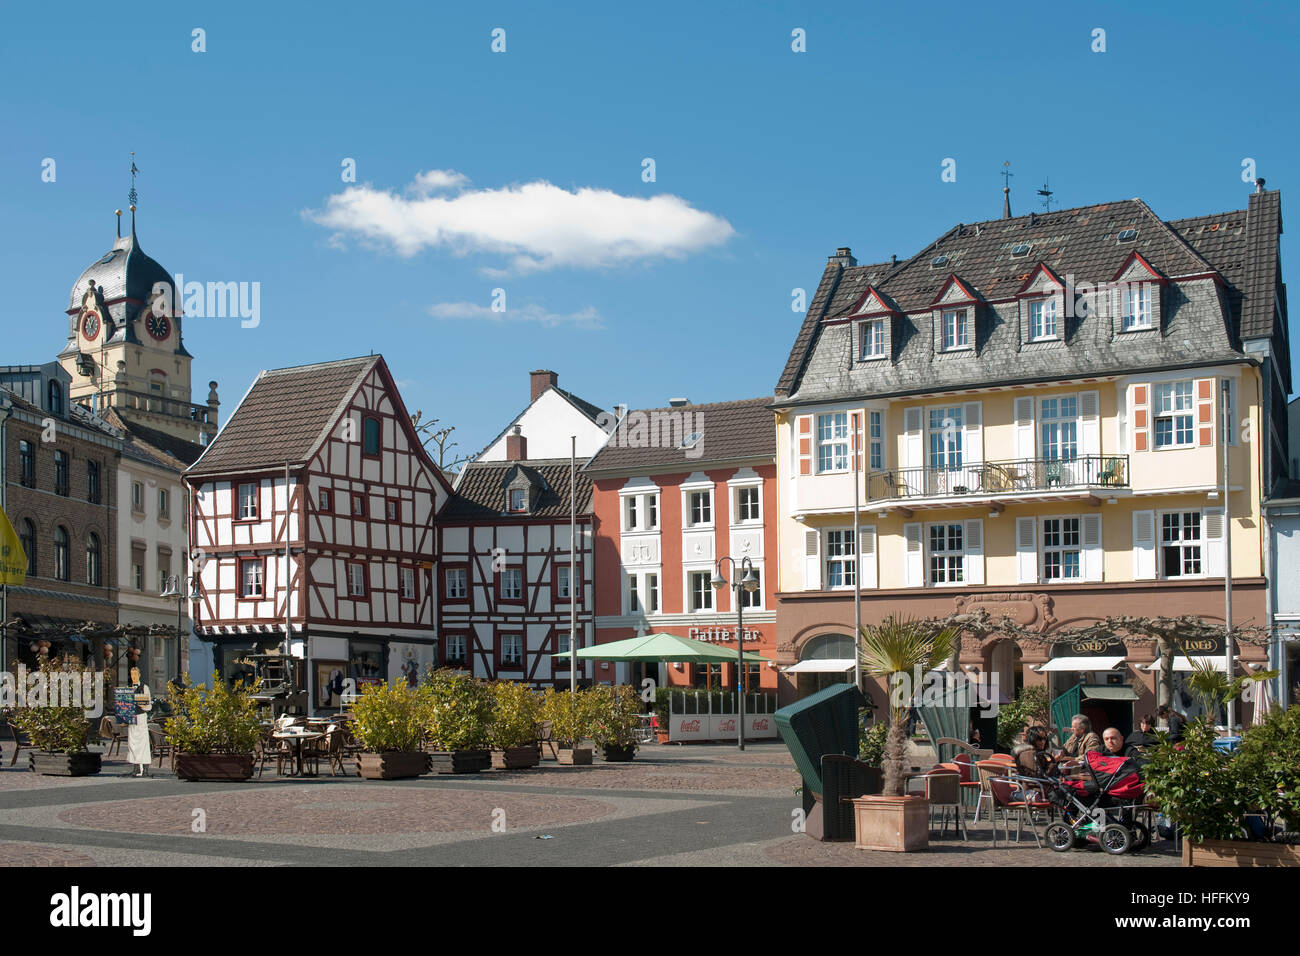 deutschland nordrhein westfalen euskirchen alter markt stock photo 130037357 alamy. Black Bedroom Furniture Sets. Home Design Ideas